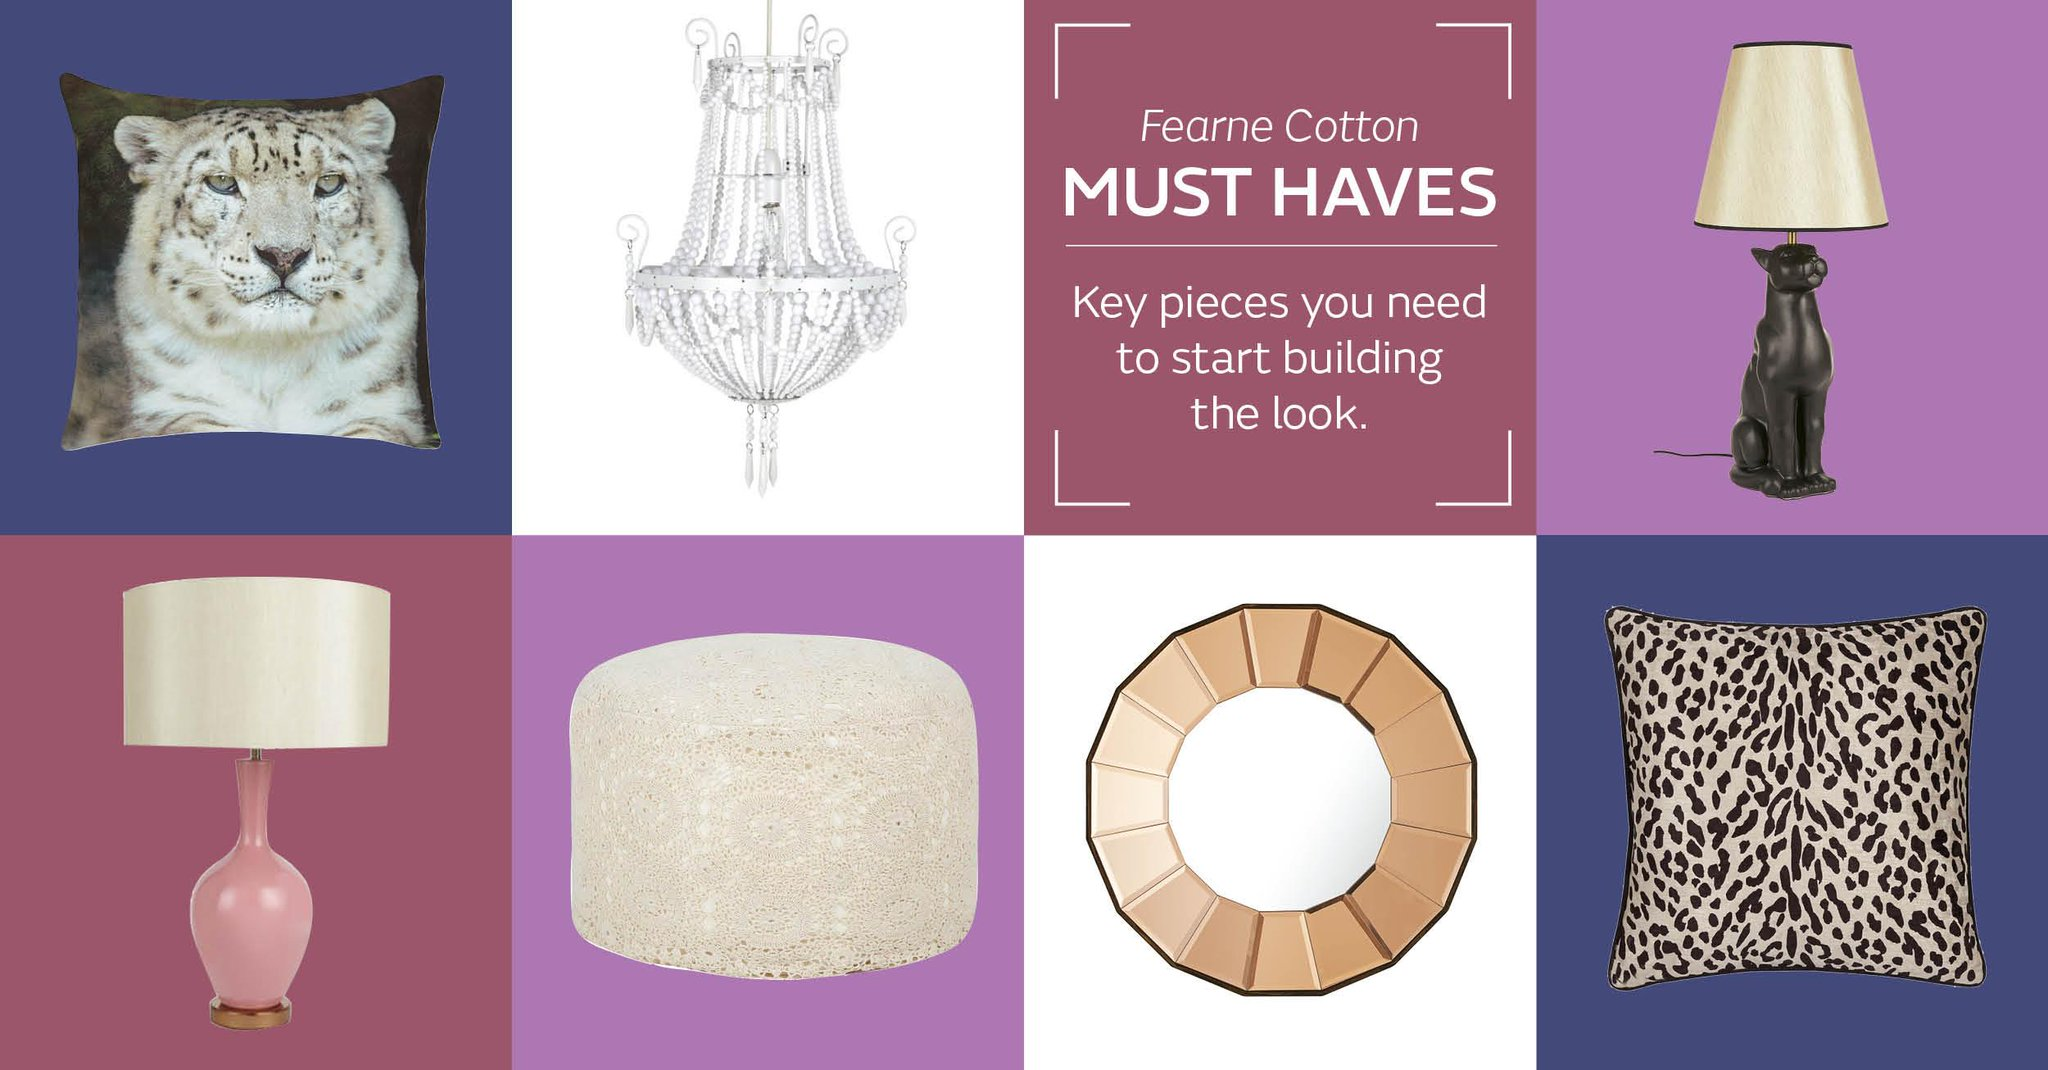 RT @verynetwork: We've picked our top must haves from @FearneCotton's stunning home collection: http://t.co/MzeoqaHVAK #VeryFearne http://t…